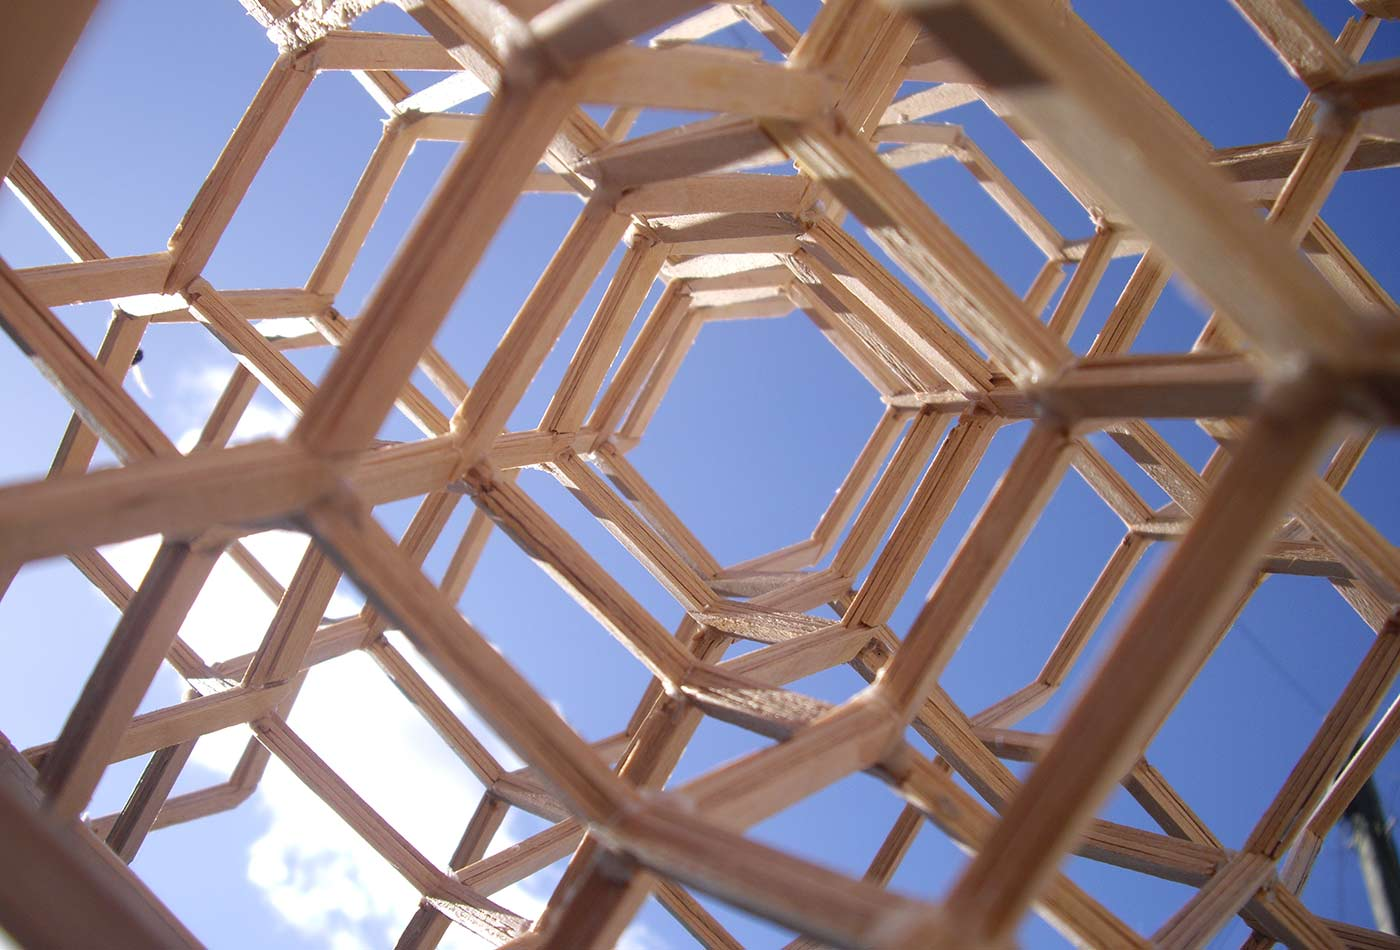 Lorimerlite structure, the strongest isotropic truss for resisting compression.